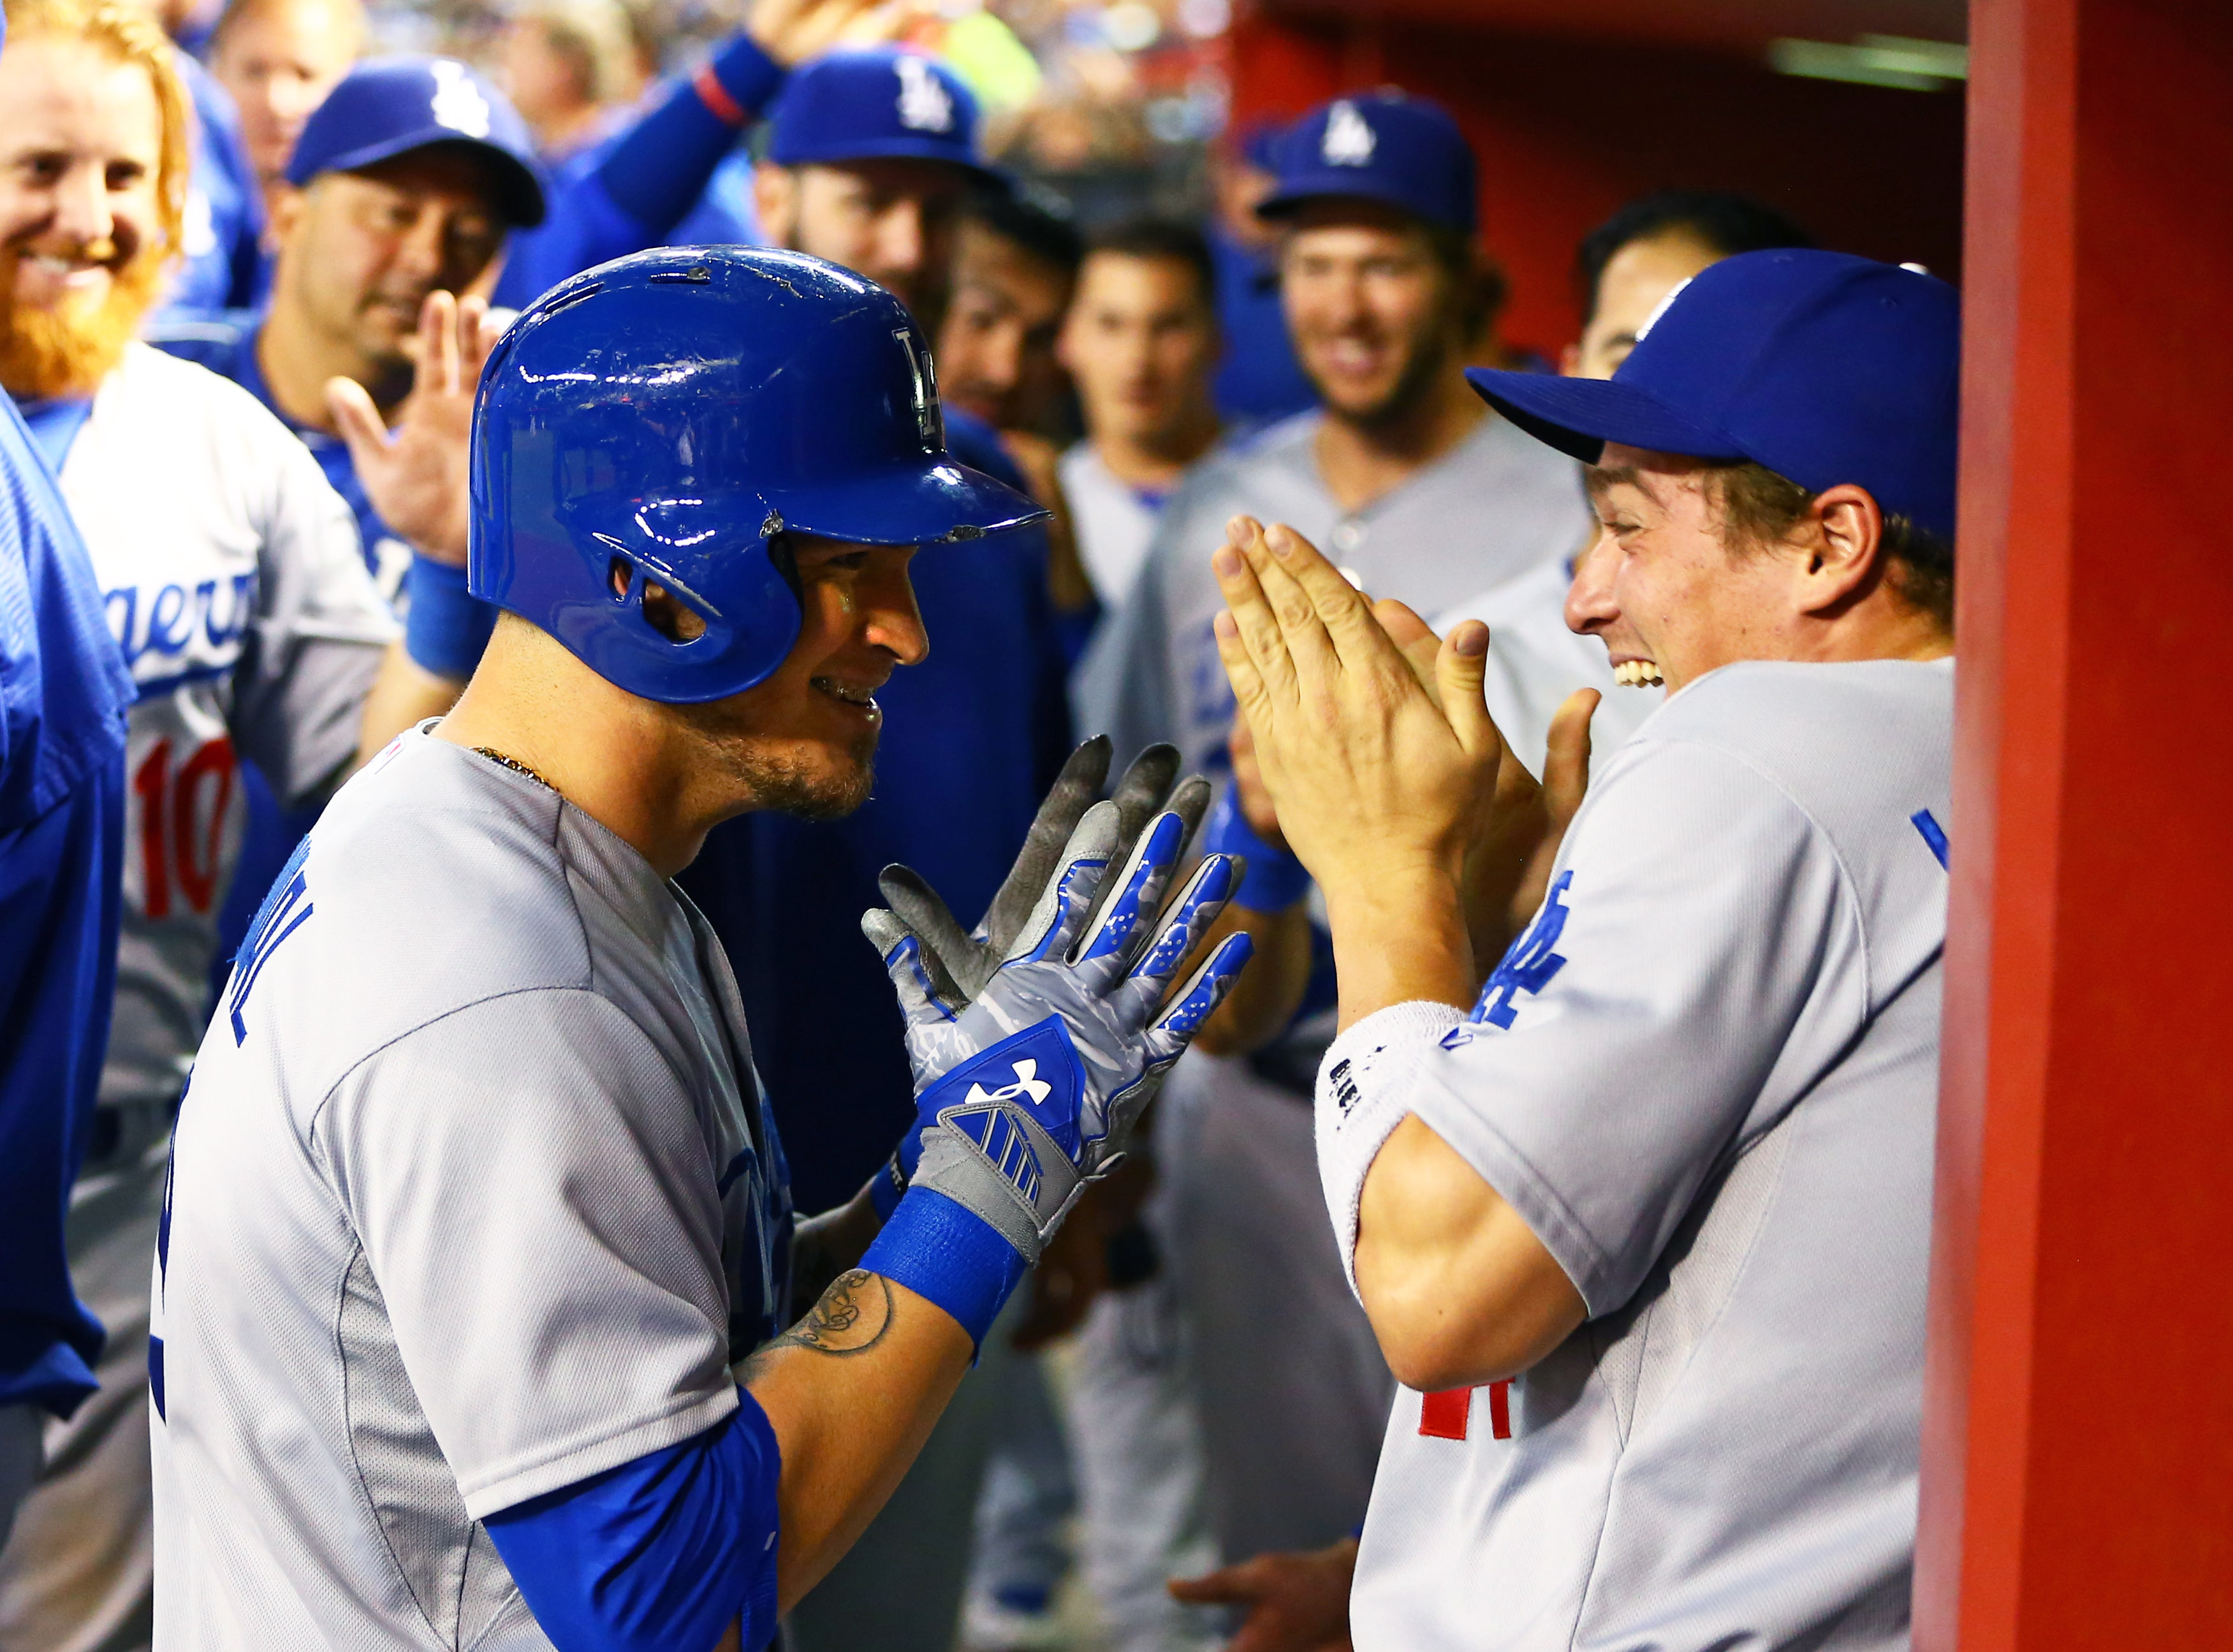 Yasmani Grandal and Kiké Hernandez, presumably when told they would start in Game 2.